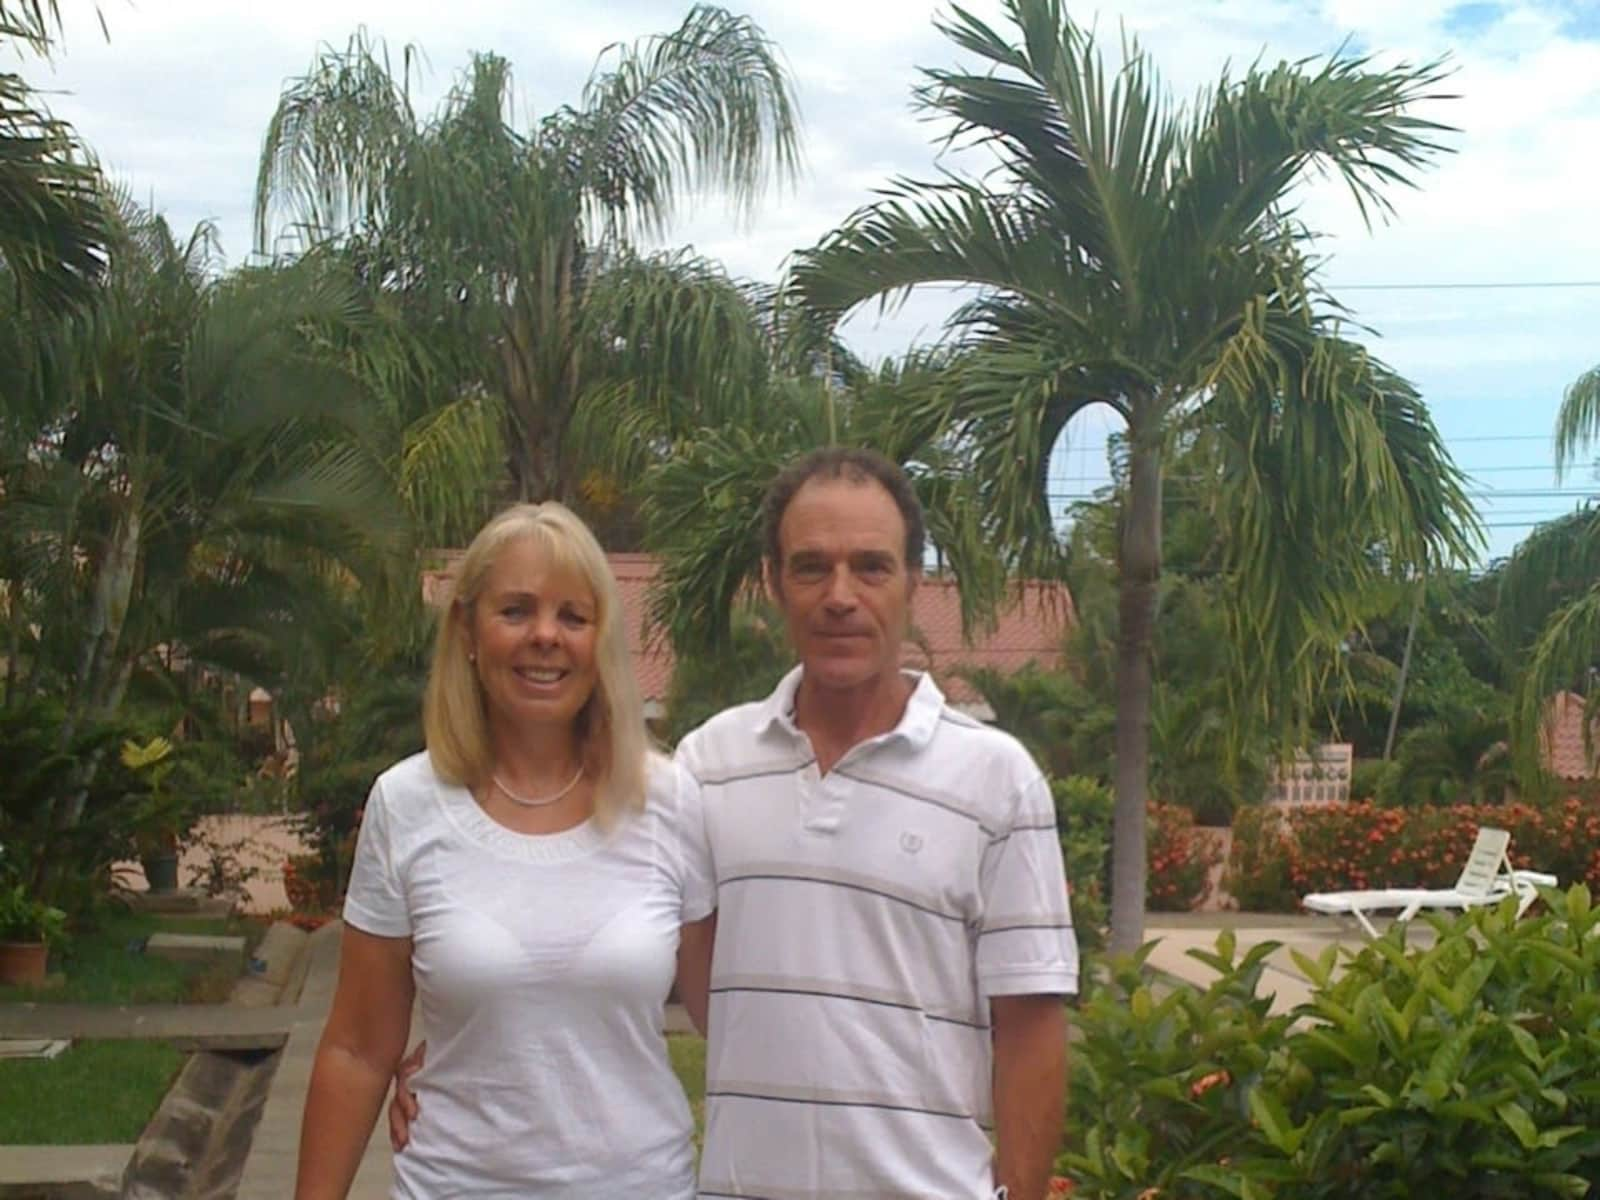 Ulrike & Tom from Arrecife, Spain